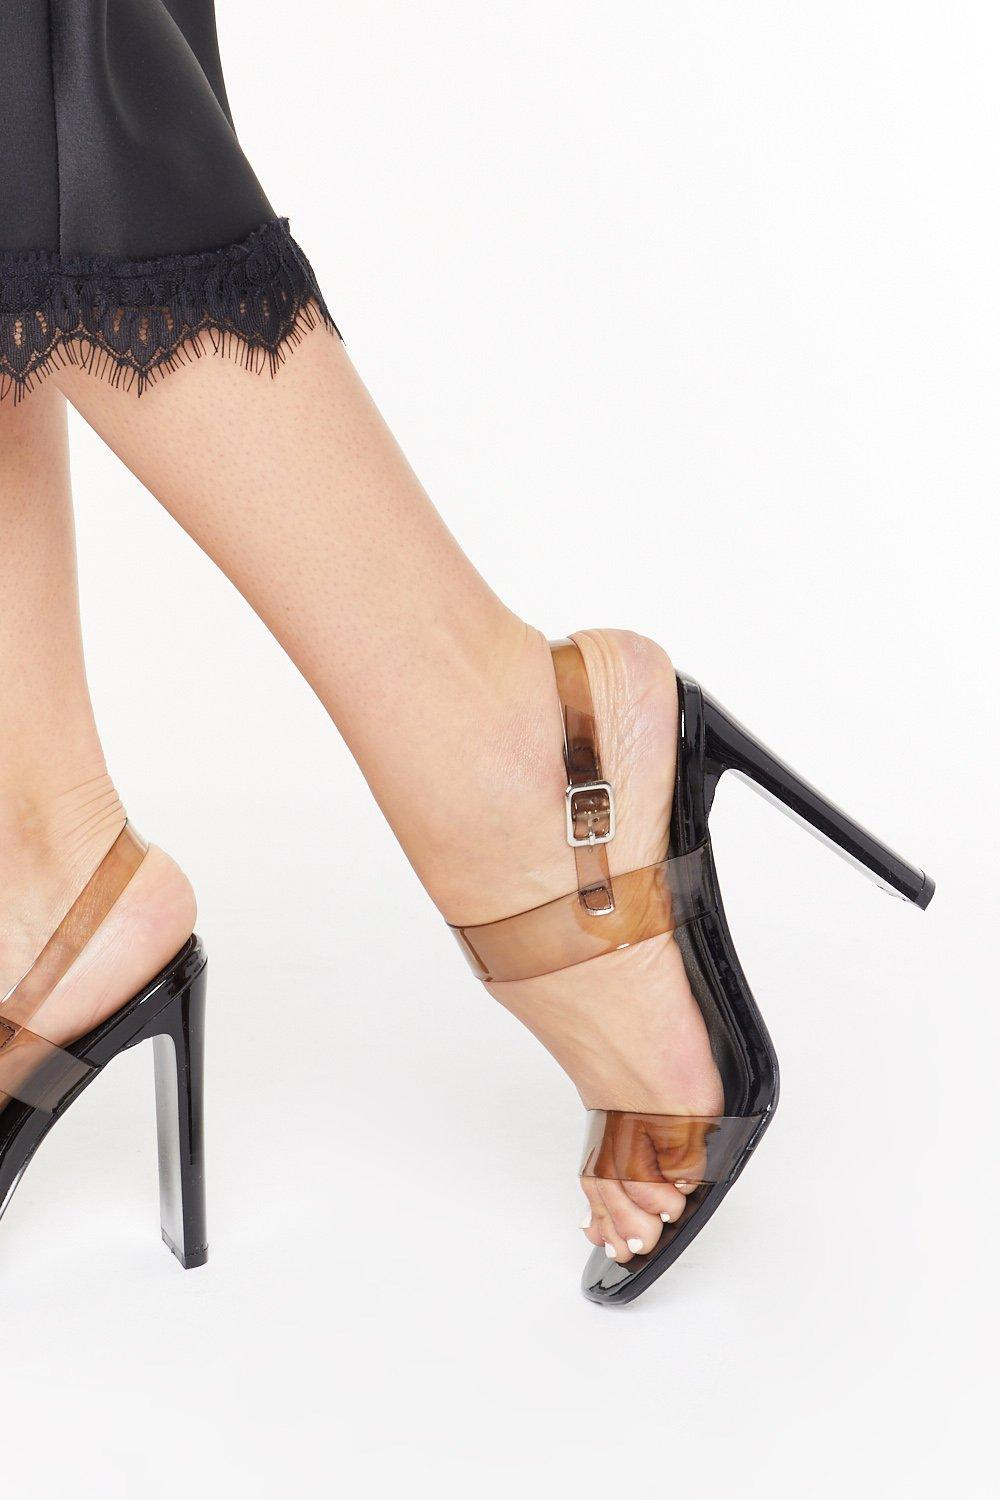 d211869125c Made It Clear Perspex Strappy Heels | Shop Clothes at Nasty Gal!